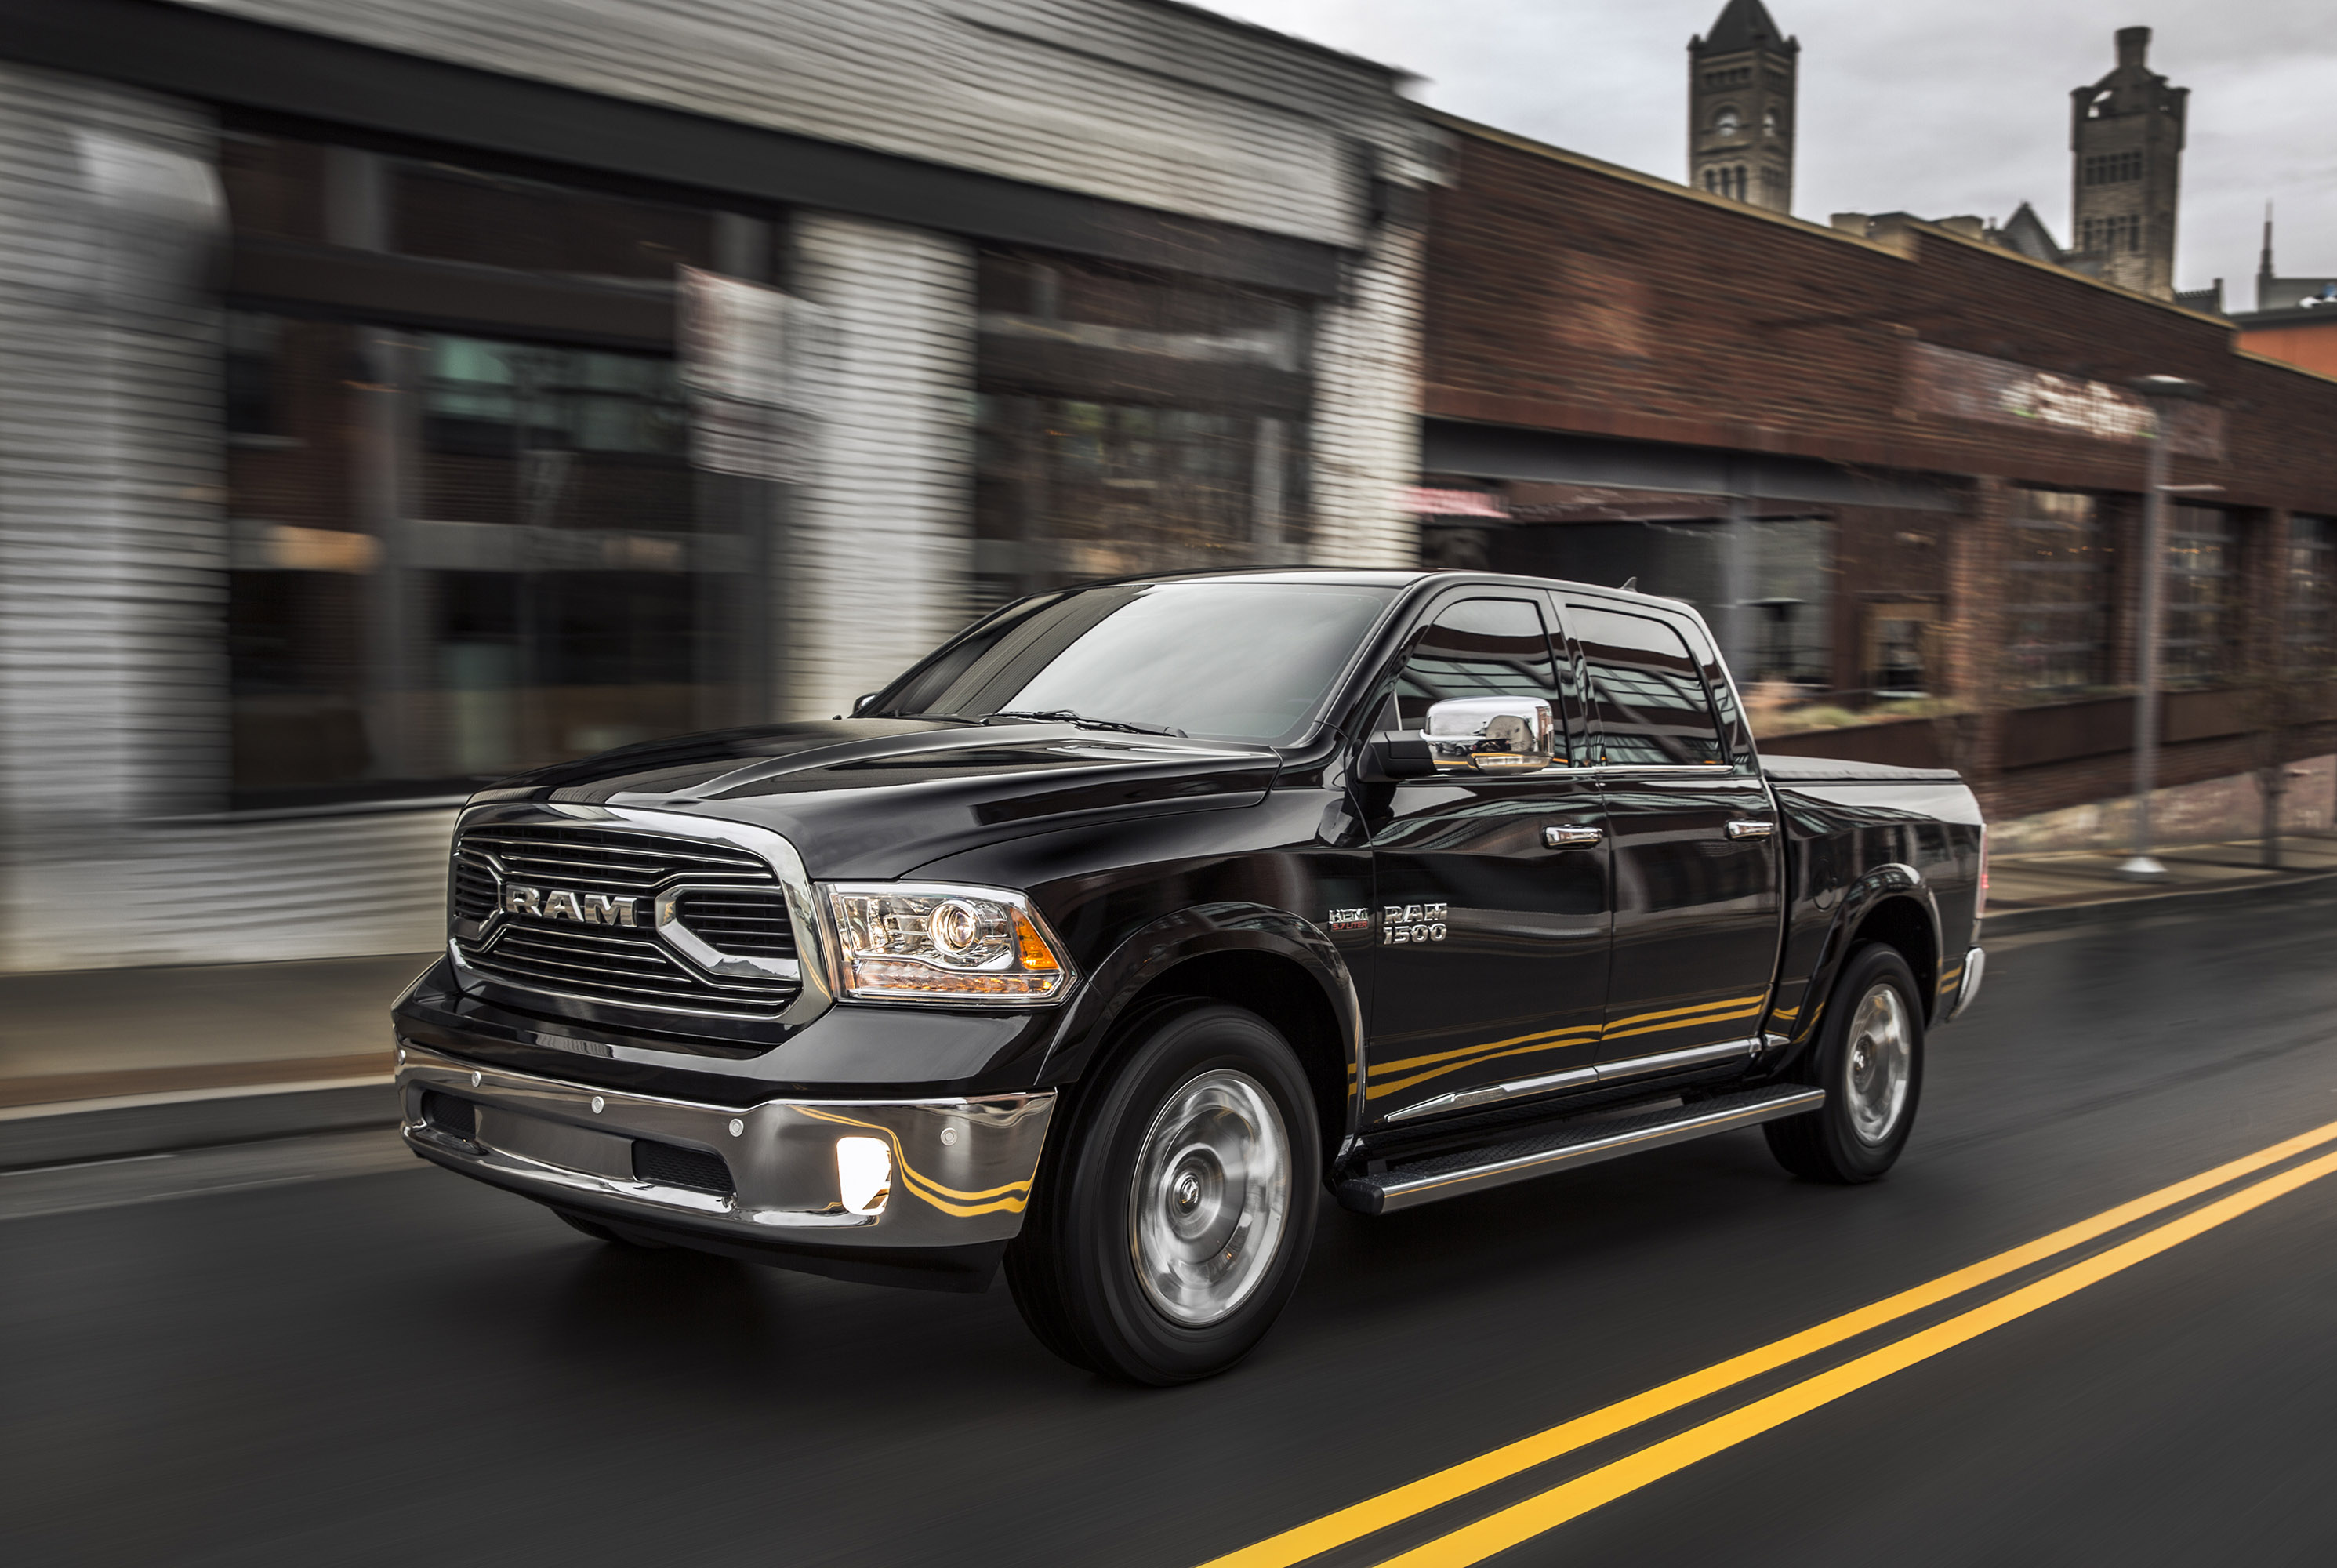 2015 Dodge Ram 1500 Laramie Limited Hd Pictures